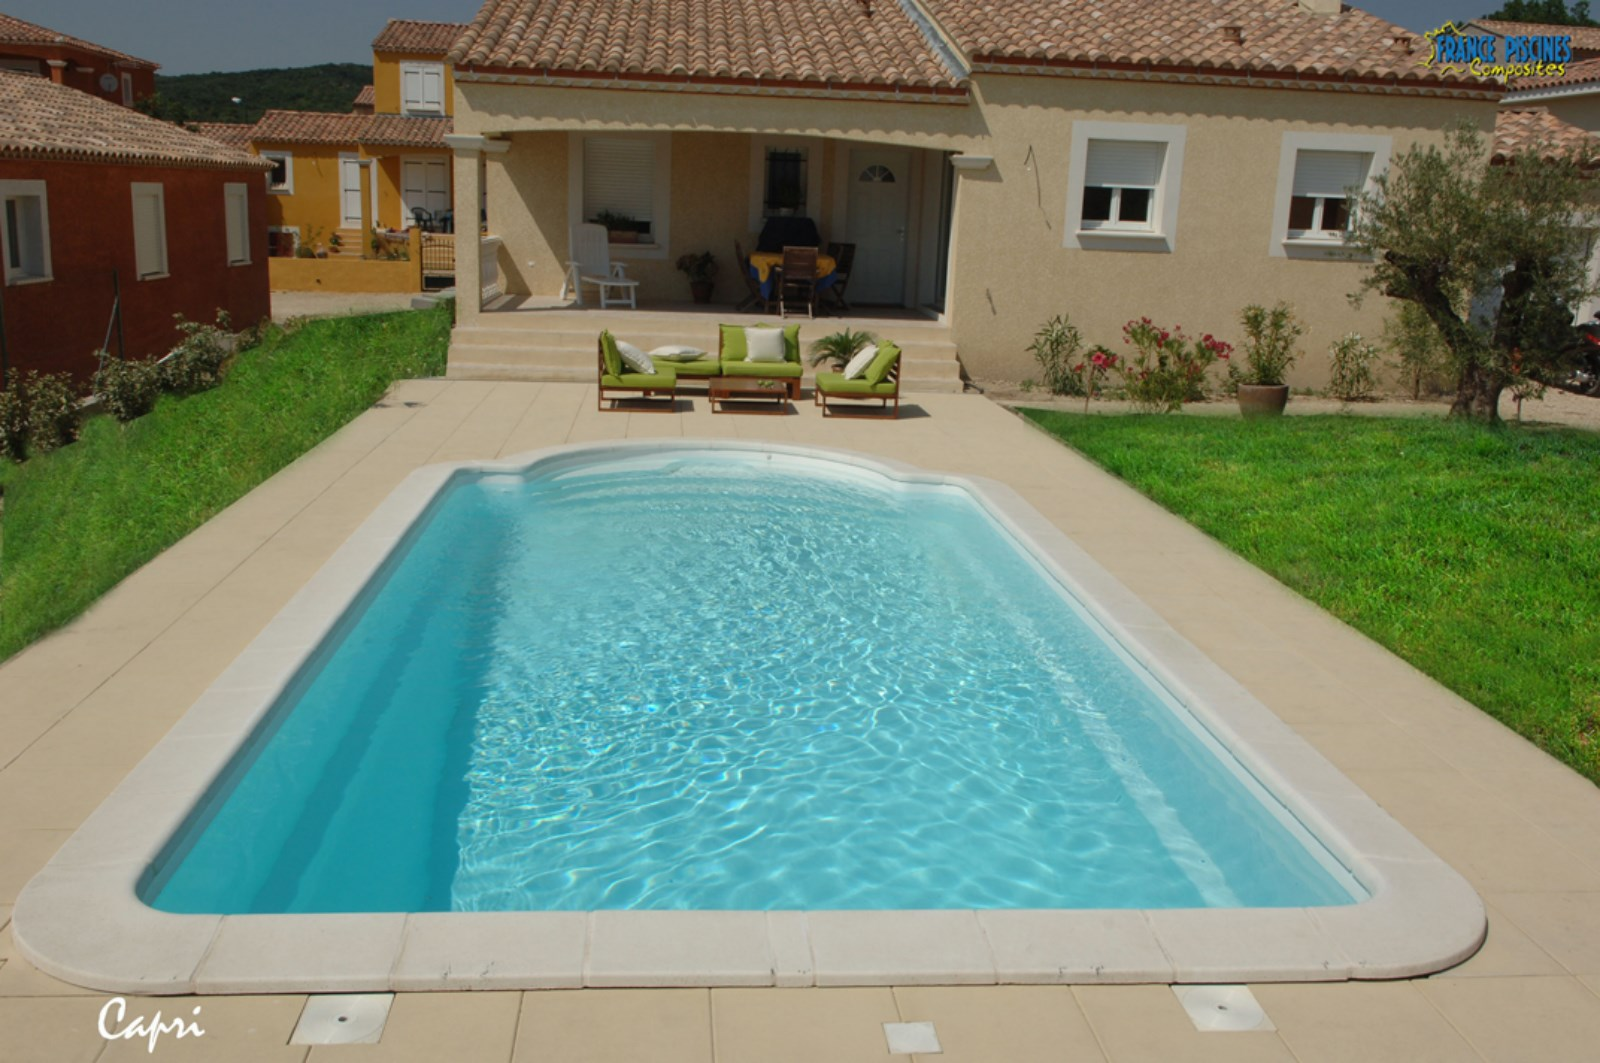 Comment installer une piscine coque polyester piscine for Fabricant piscine polyester